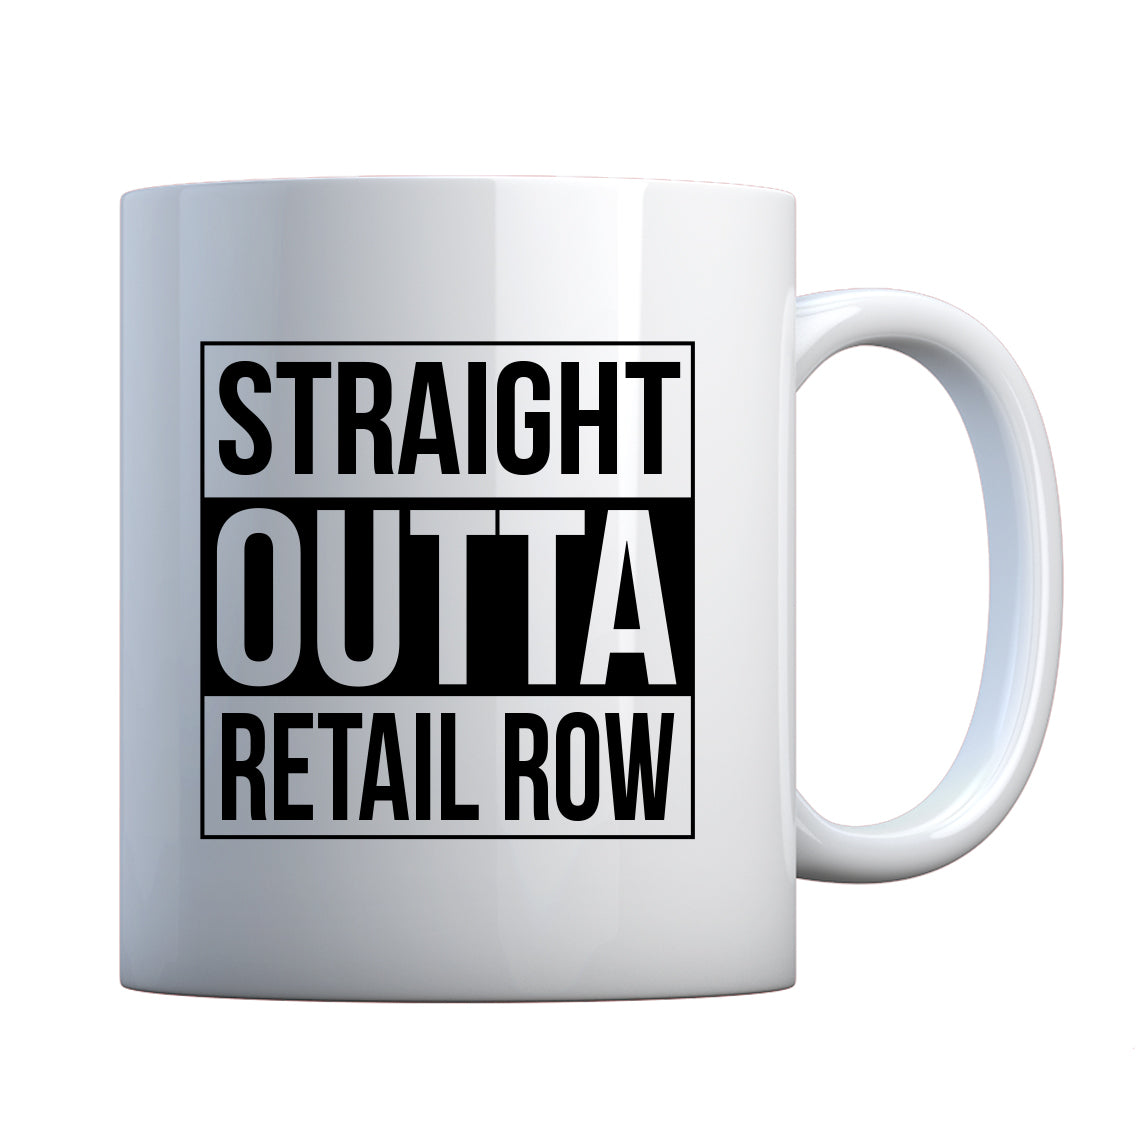 Mug Straight Outta Retail Row Ceramic Gift Mug